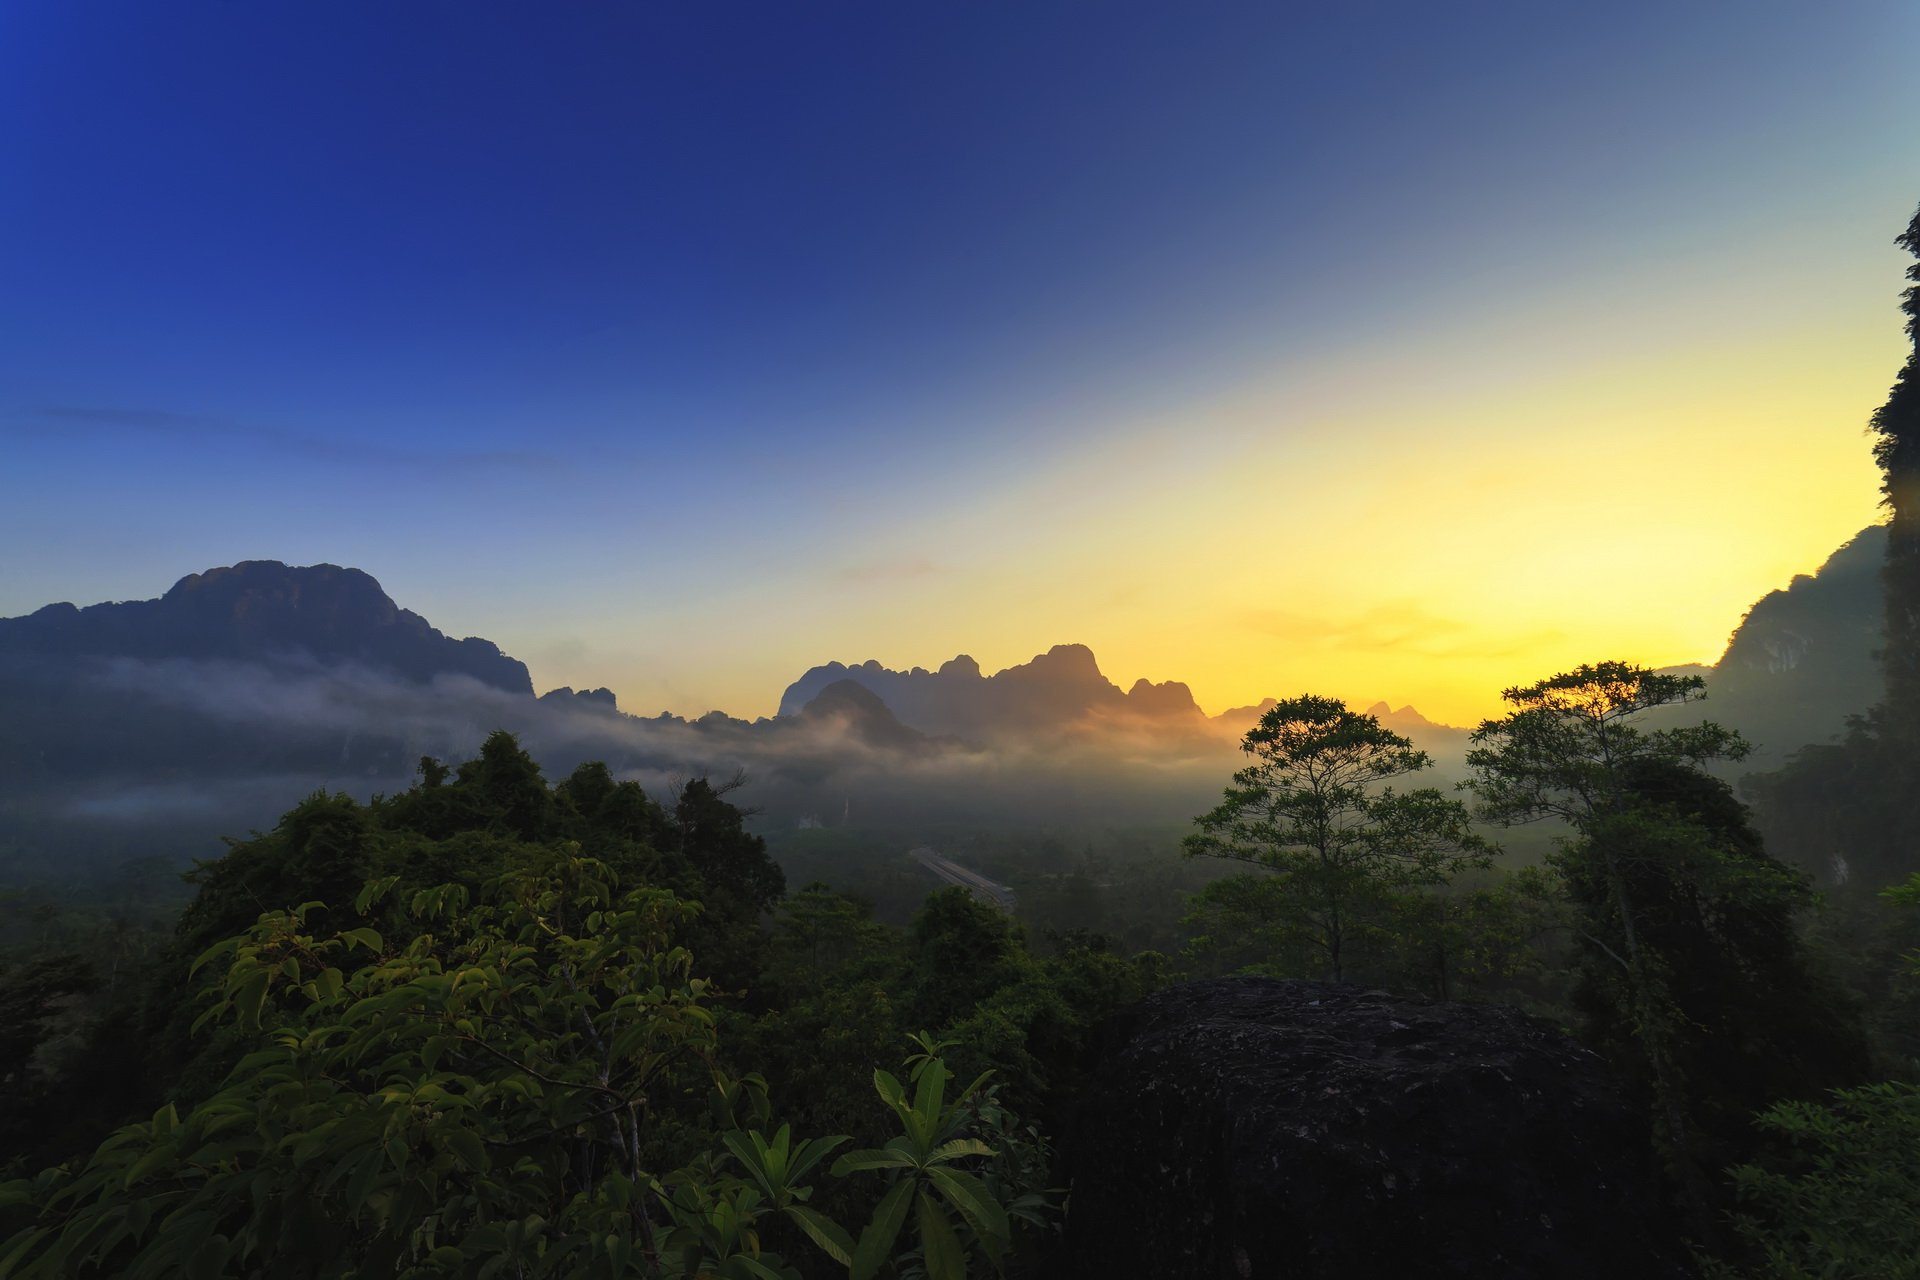 Sunrise over the rainforest in Khao Sok National Park, Thailand.